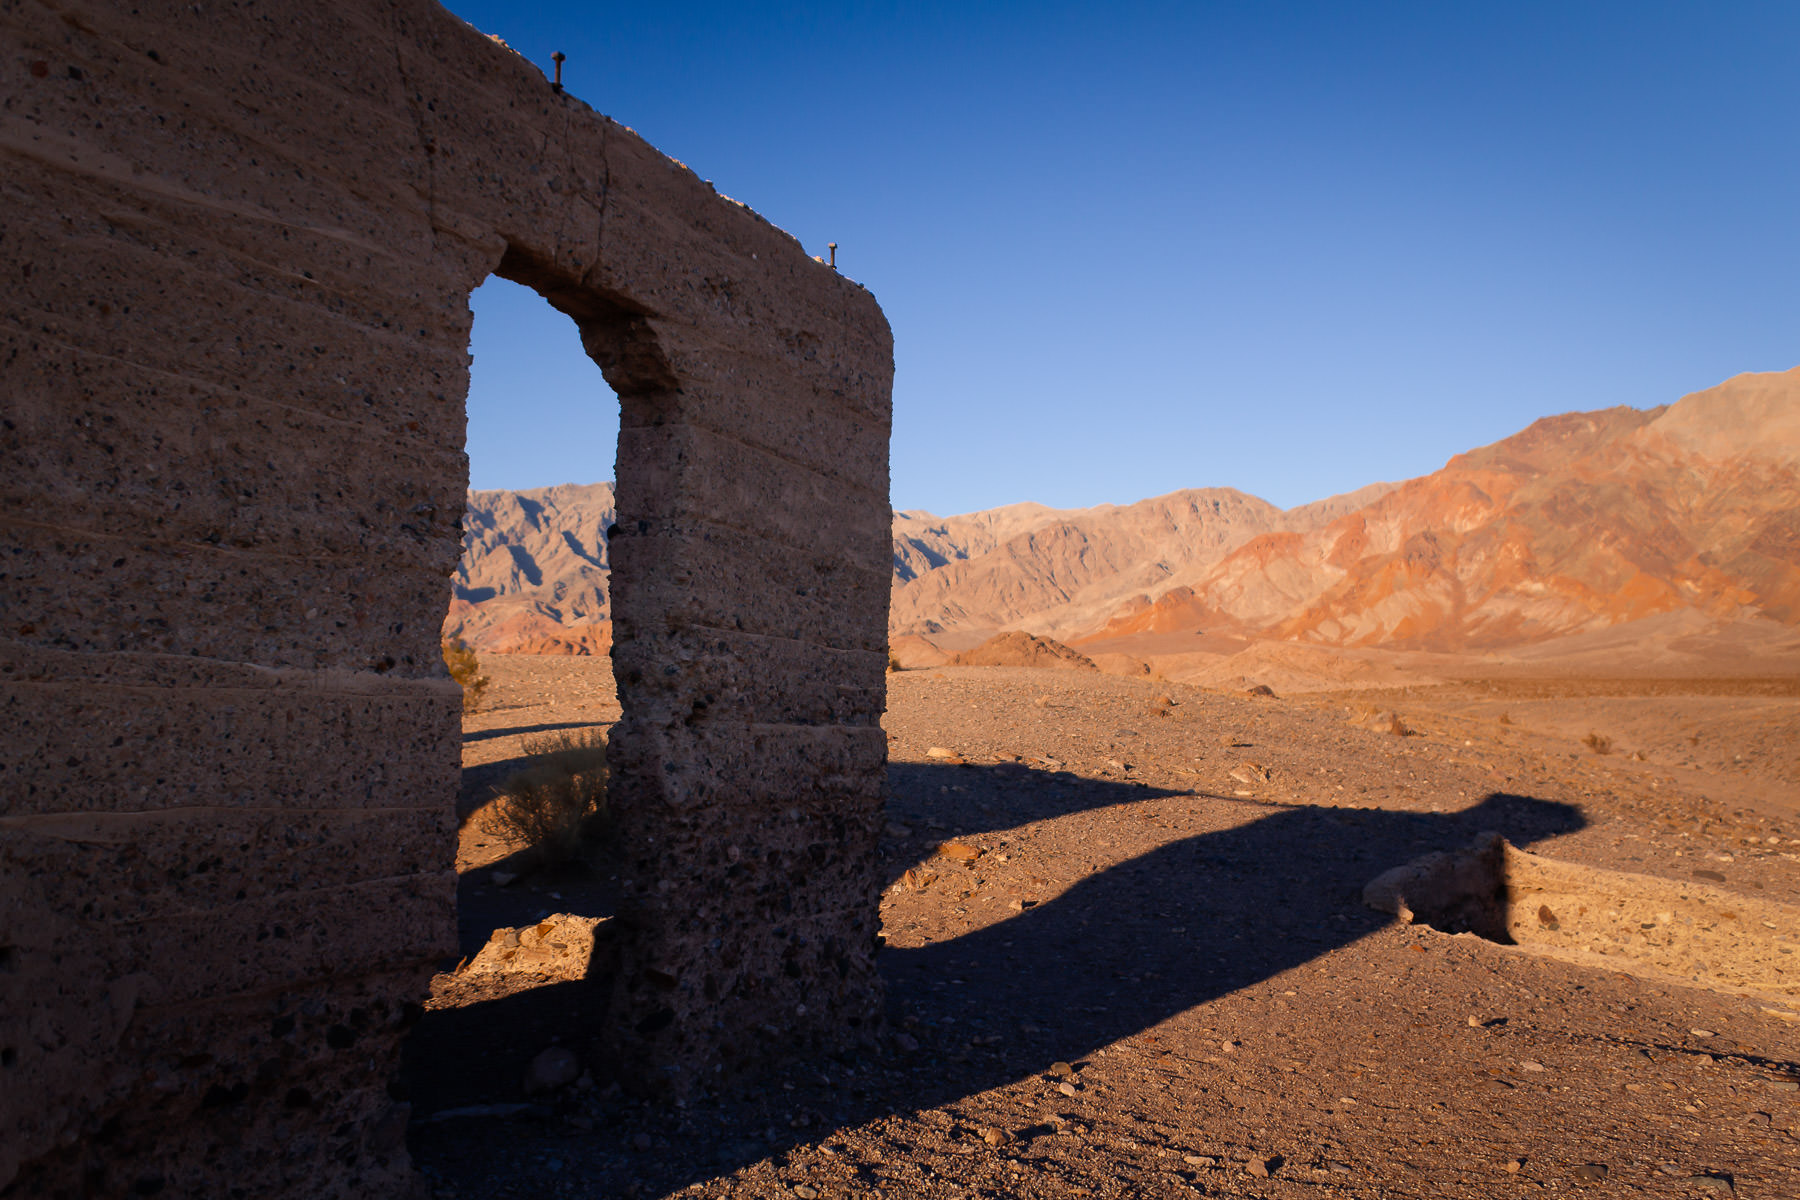 The Ashford Mill ruins cast long shadows in the dry desert at California's Death Valley National Park.